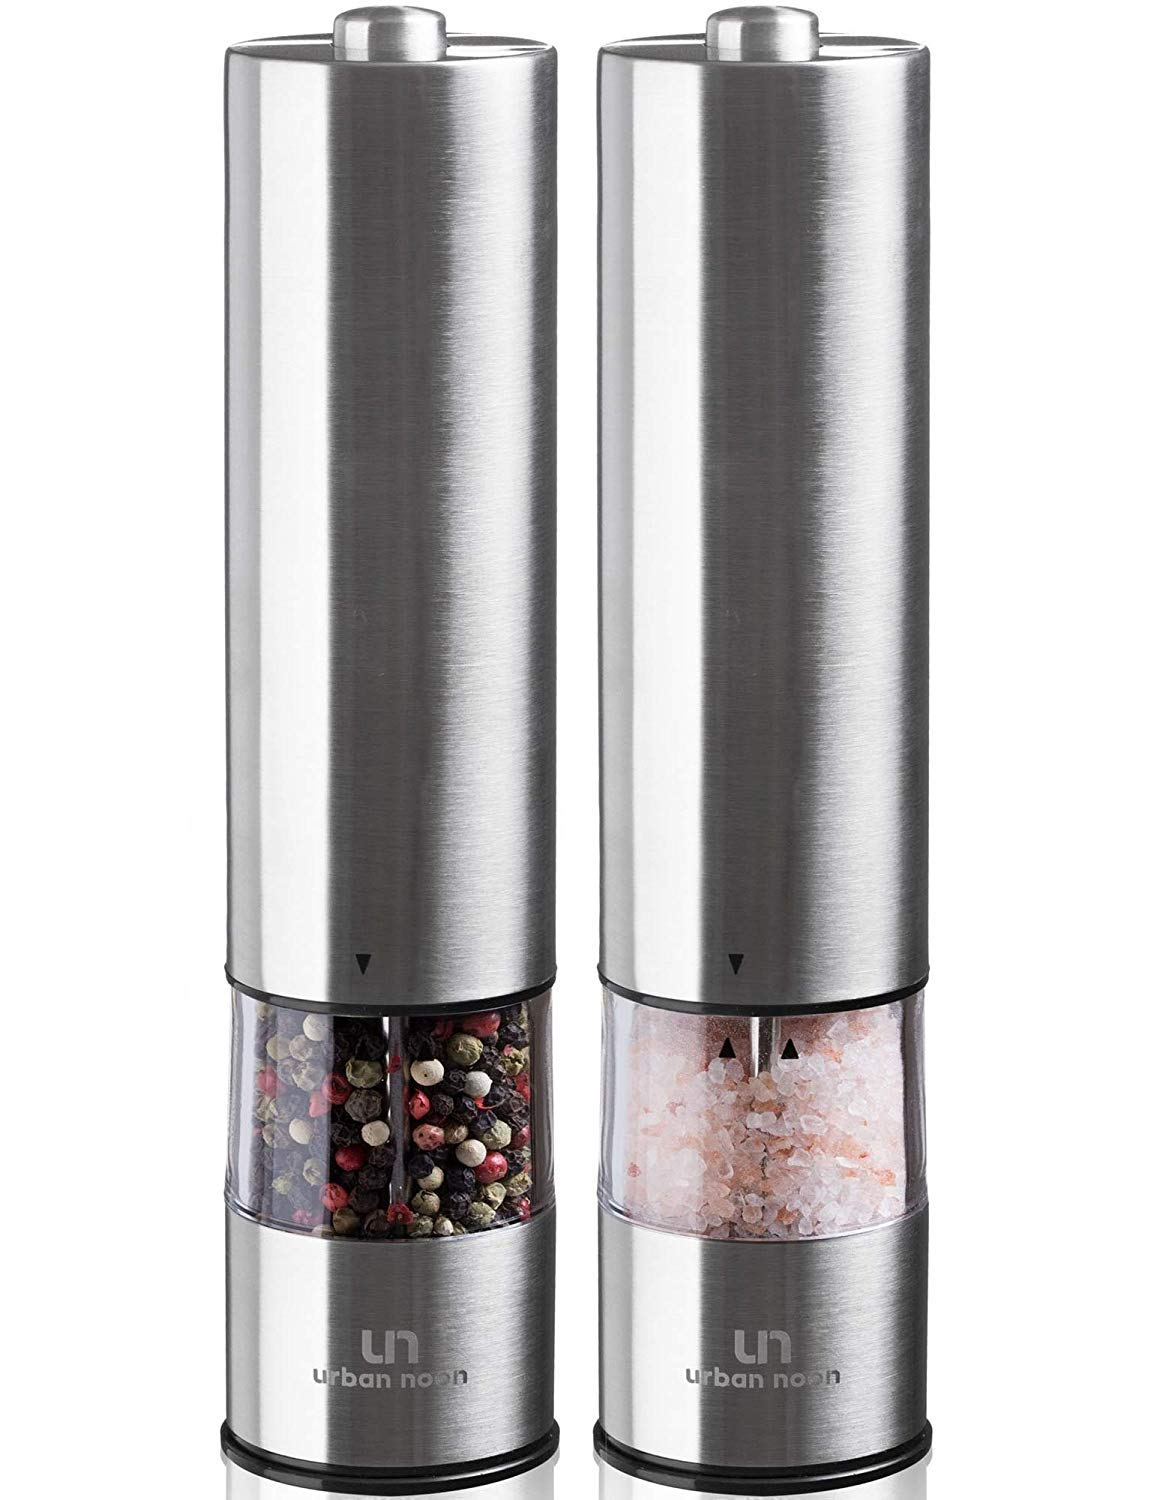 Electric Salt and Pepper Grinder Set - Battery Operated Stainless Steel Mill with Light (Pack of 2 Mills) - Automatic One Handed Operation - Electronic Adjustable Shakers - Ceramic Grinders by urban noon